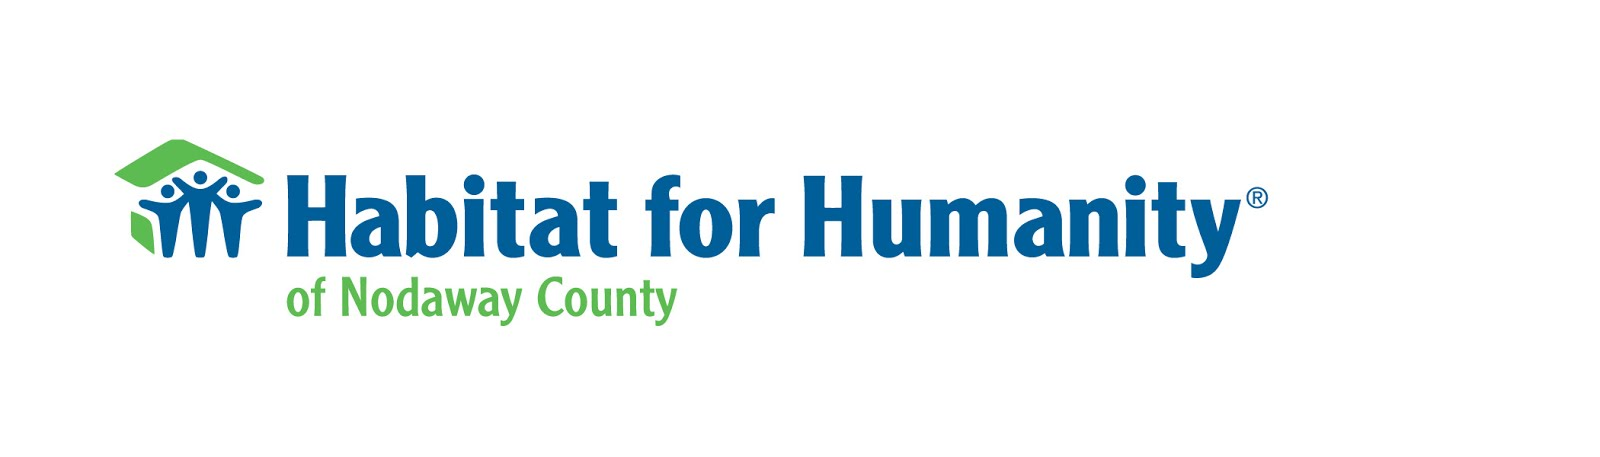 Habitat for Humanity of Nodaway County